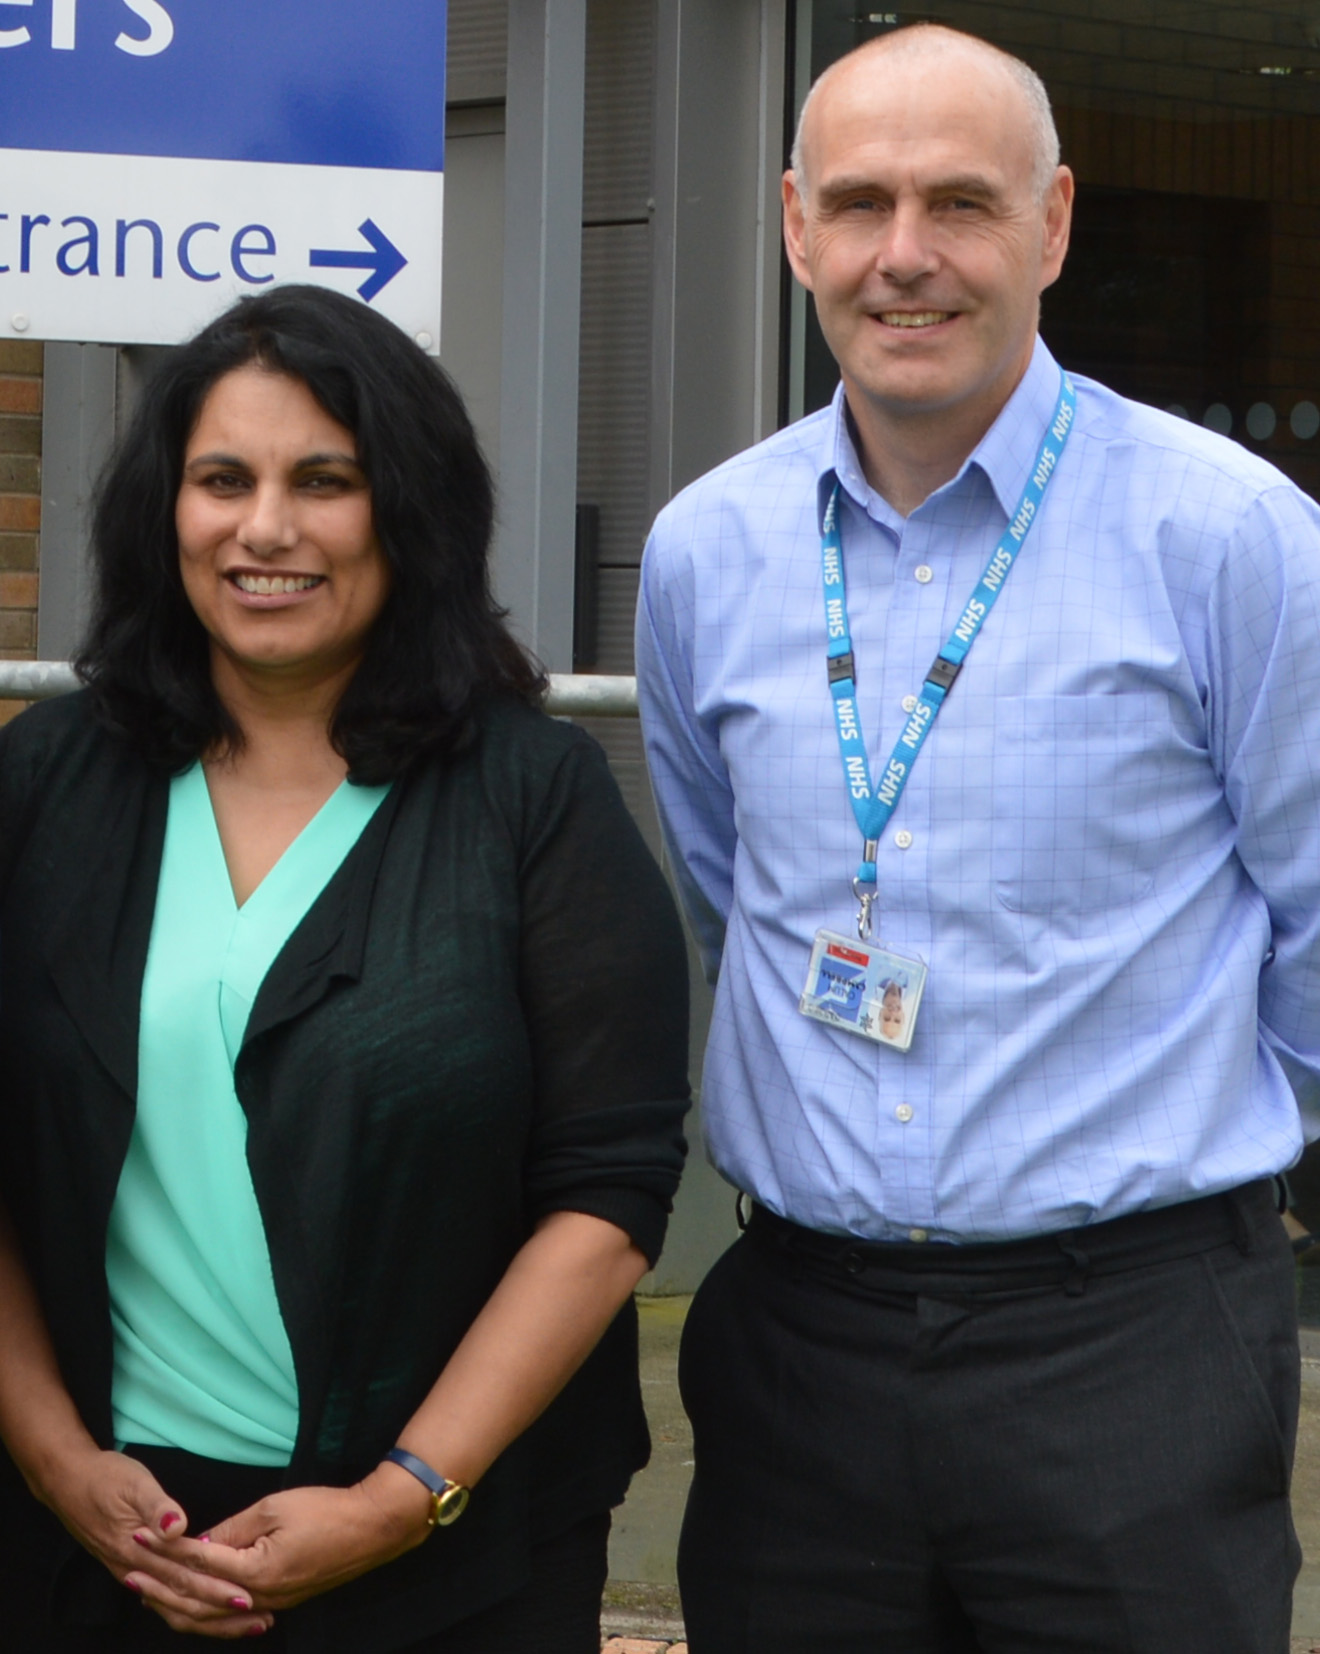 NHS Lanarkshire welcomes approval of Blantyre Care Hub